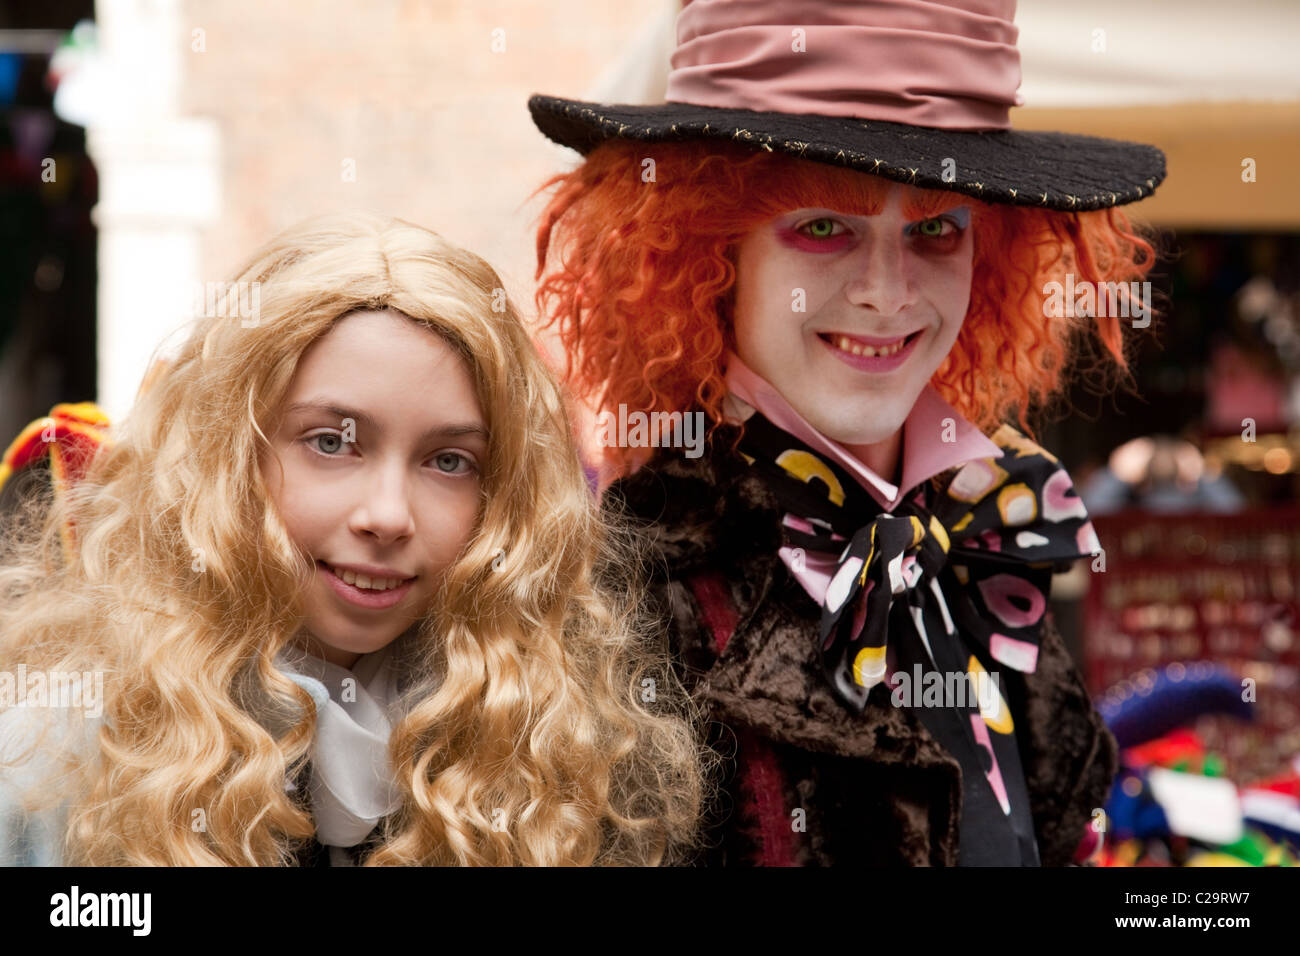 Two People In The Costumes Of Alice In Wonderland Characters Alice Stock Photo Alamy